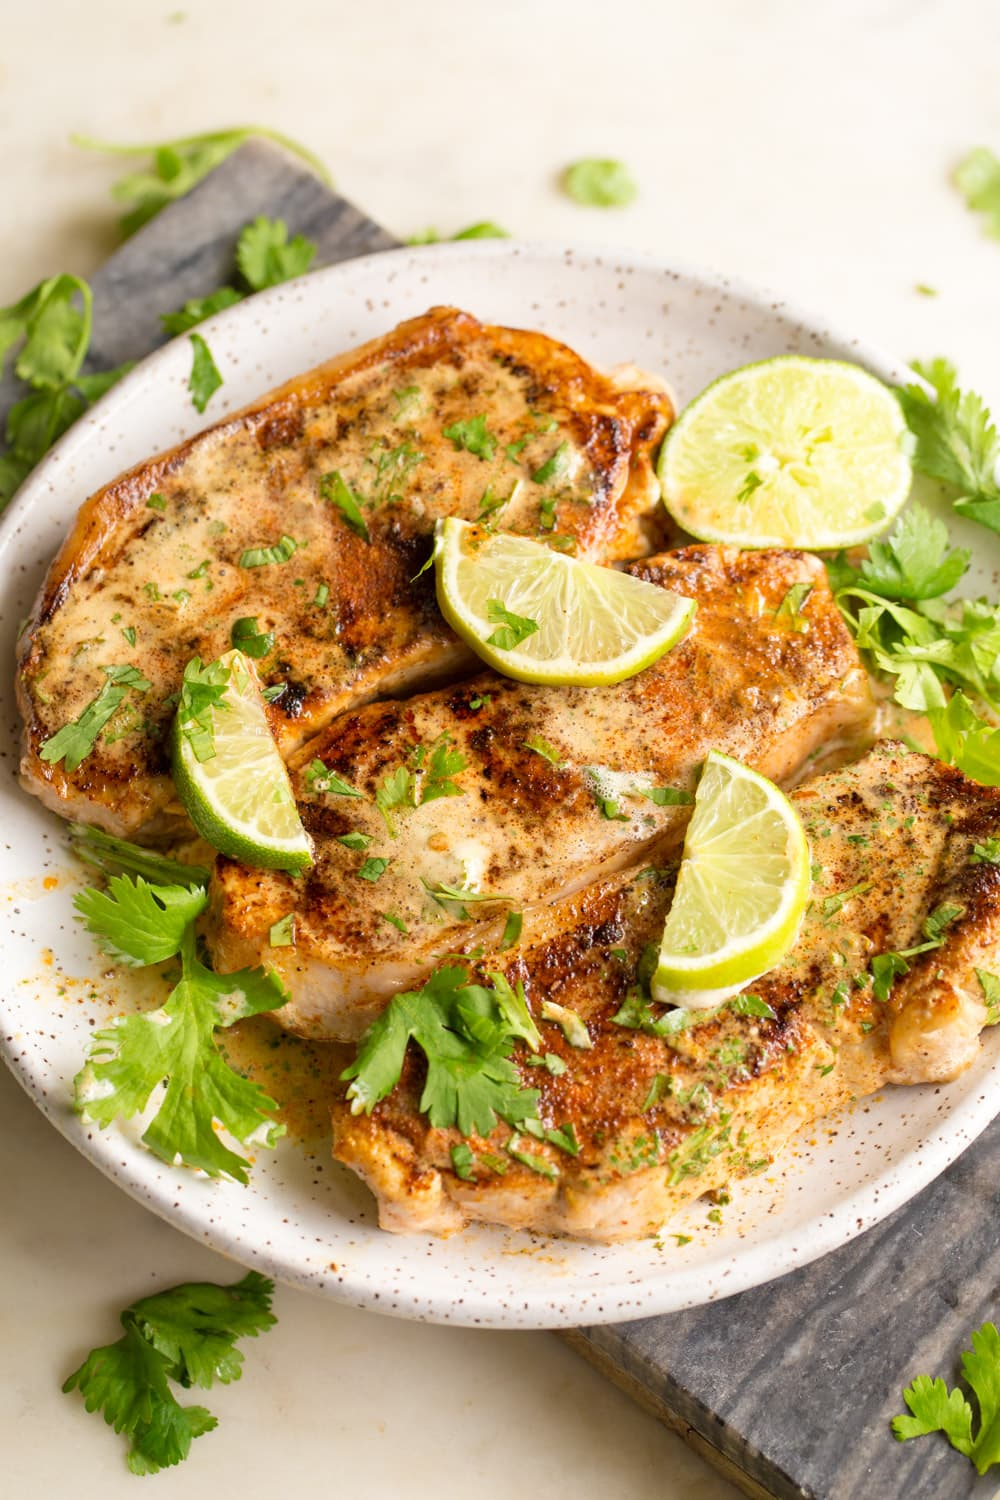 Spicy pork chops on a white plate with creamy sauce.